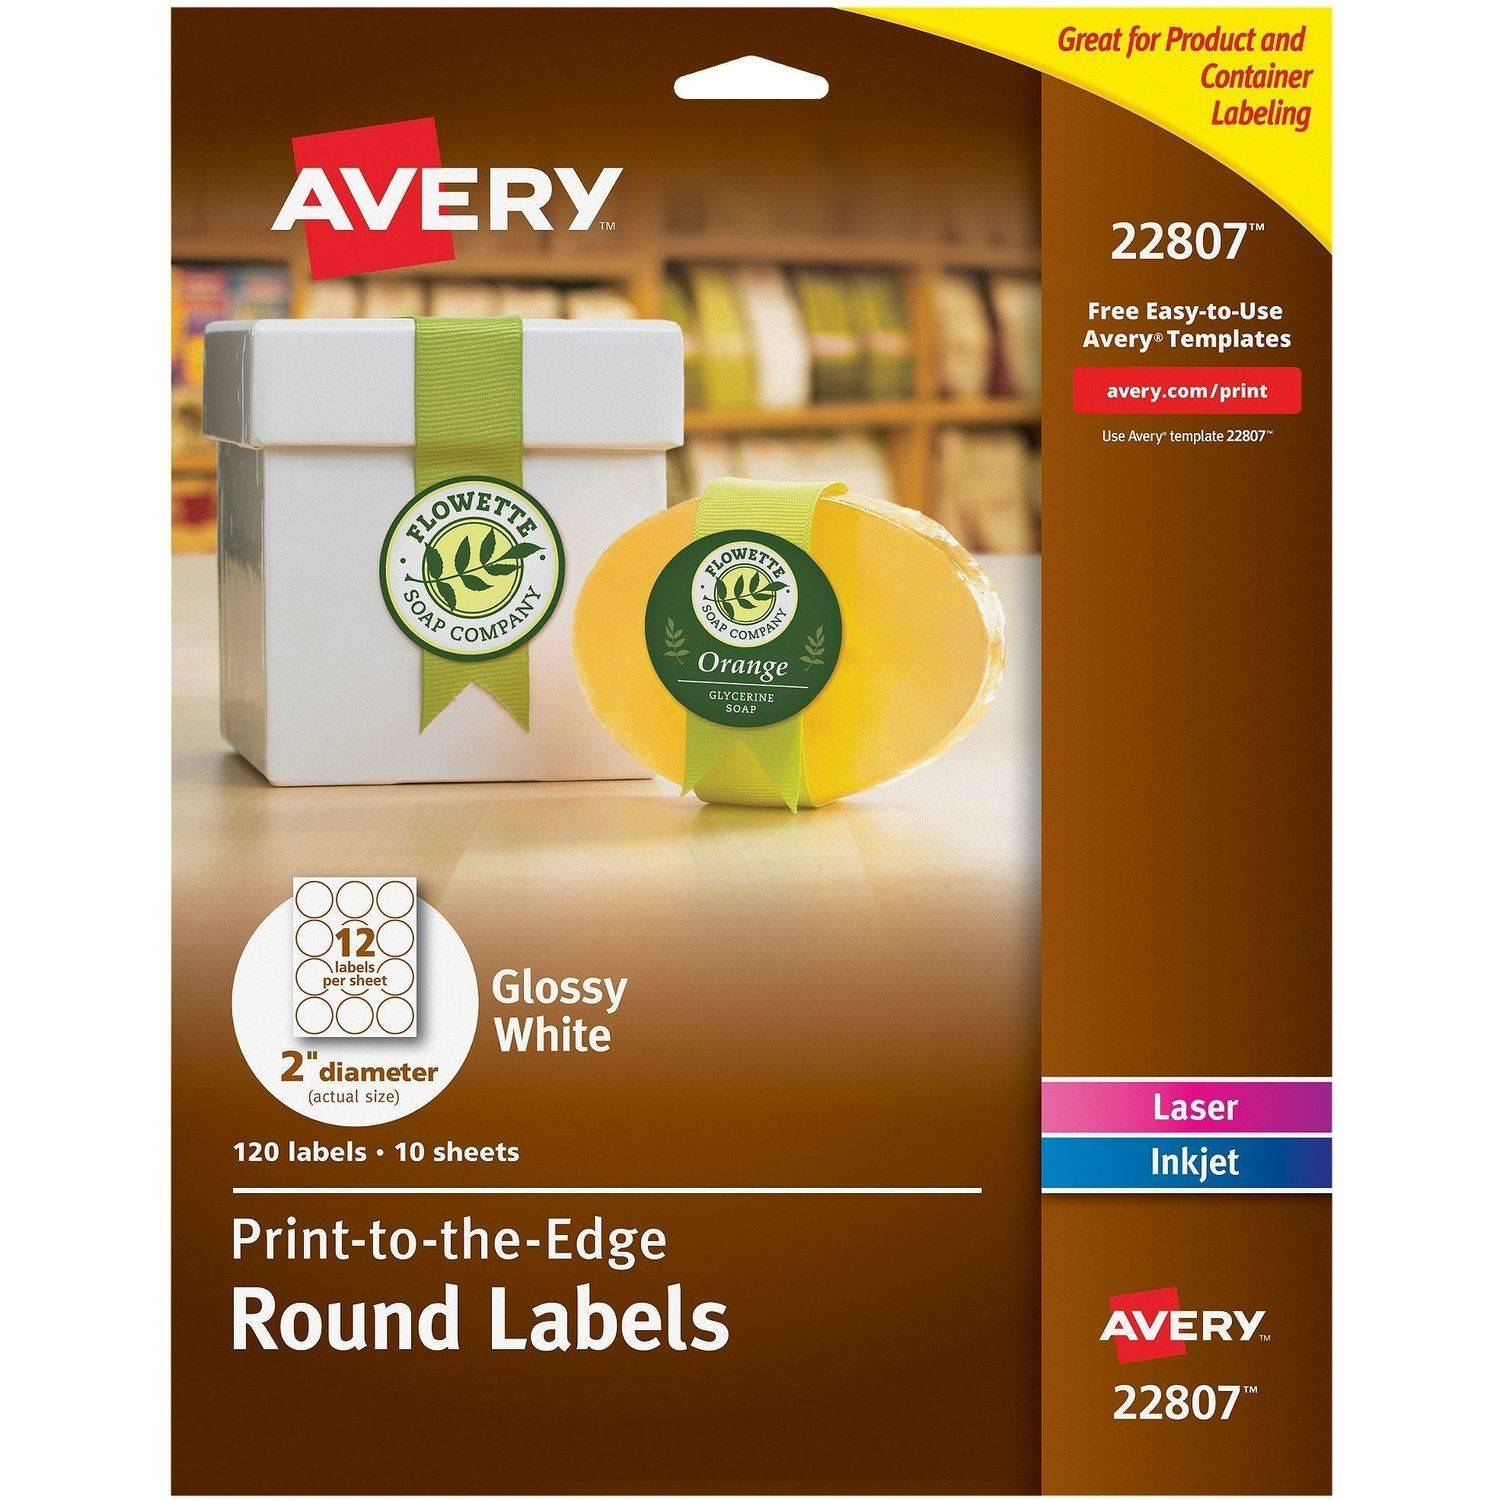 Avery Glossy White Laser Inkjet Print-to-the-Edge Round Labels 22807 10 Sheets